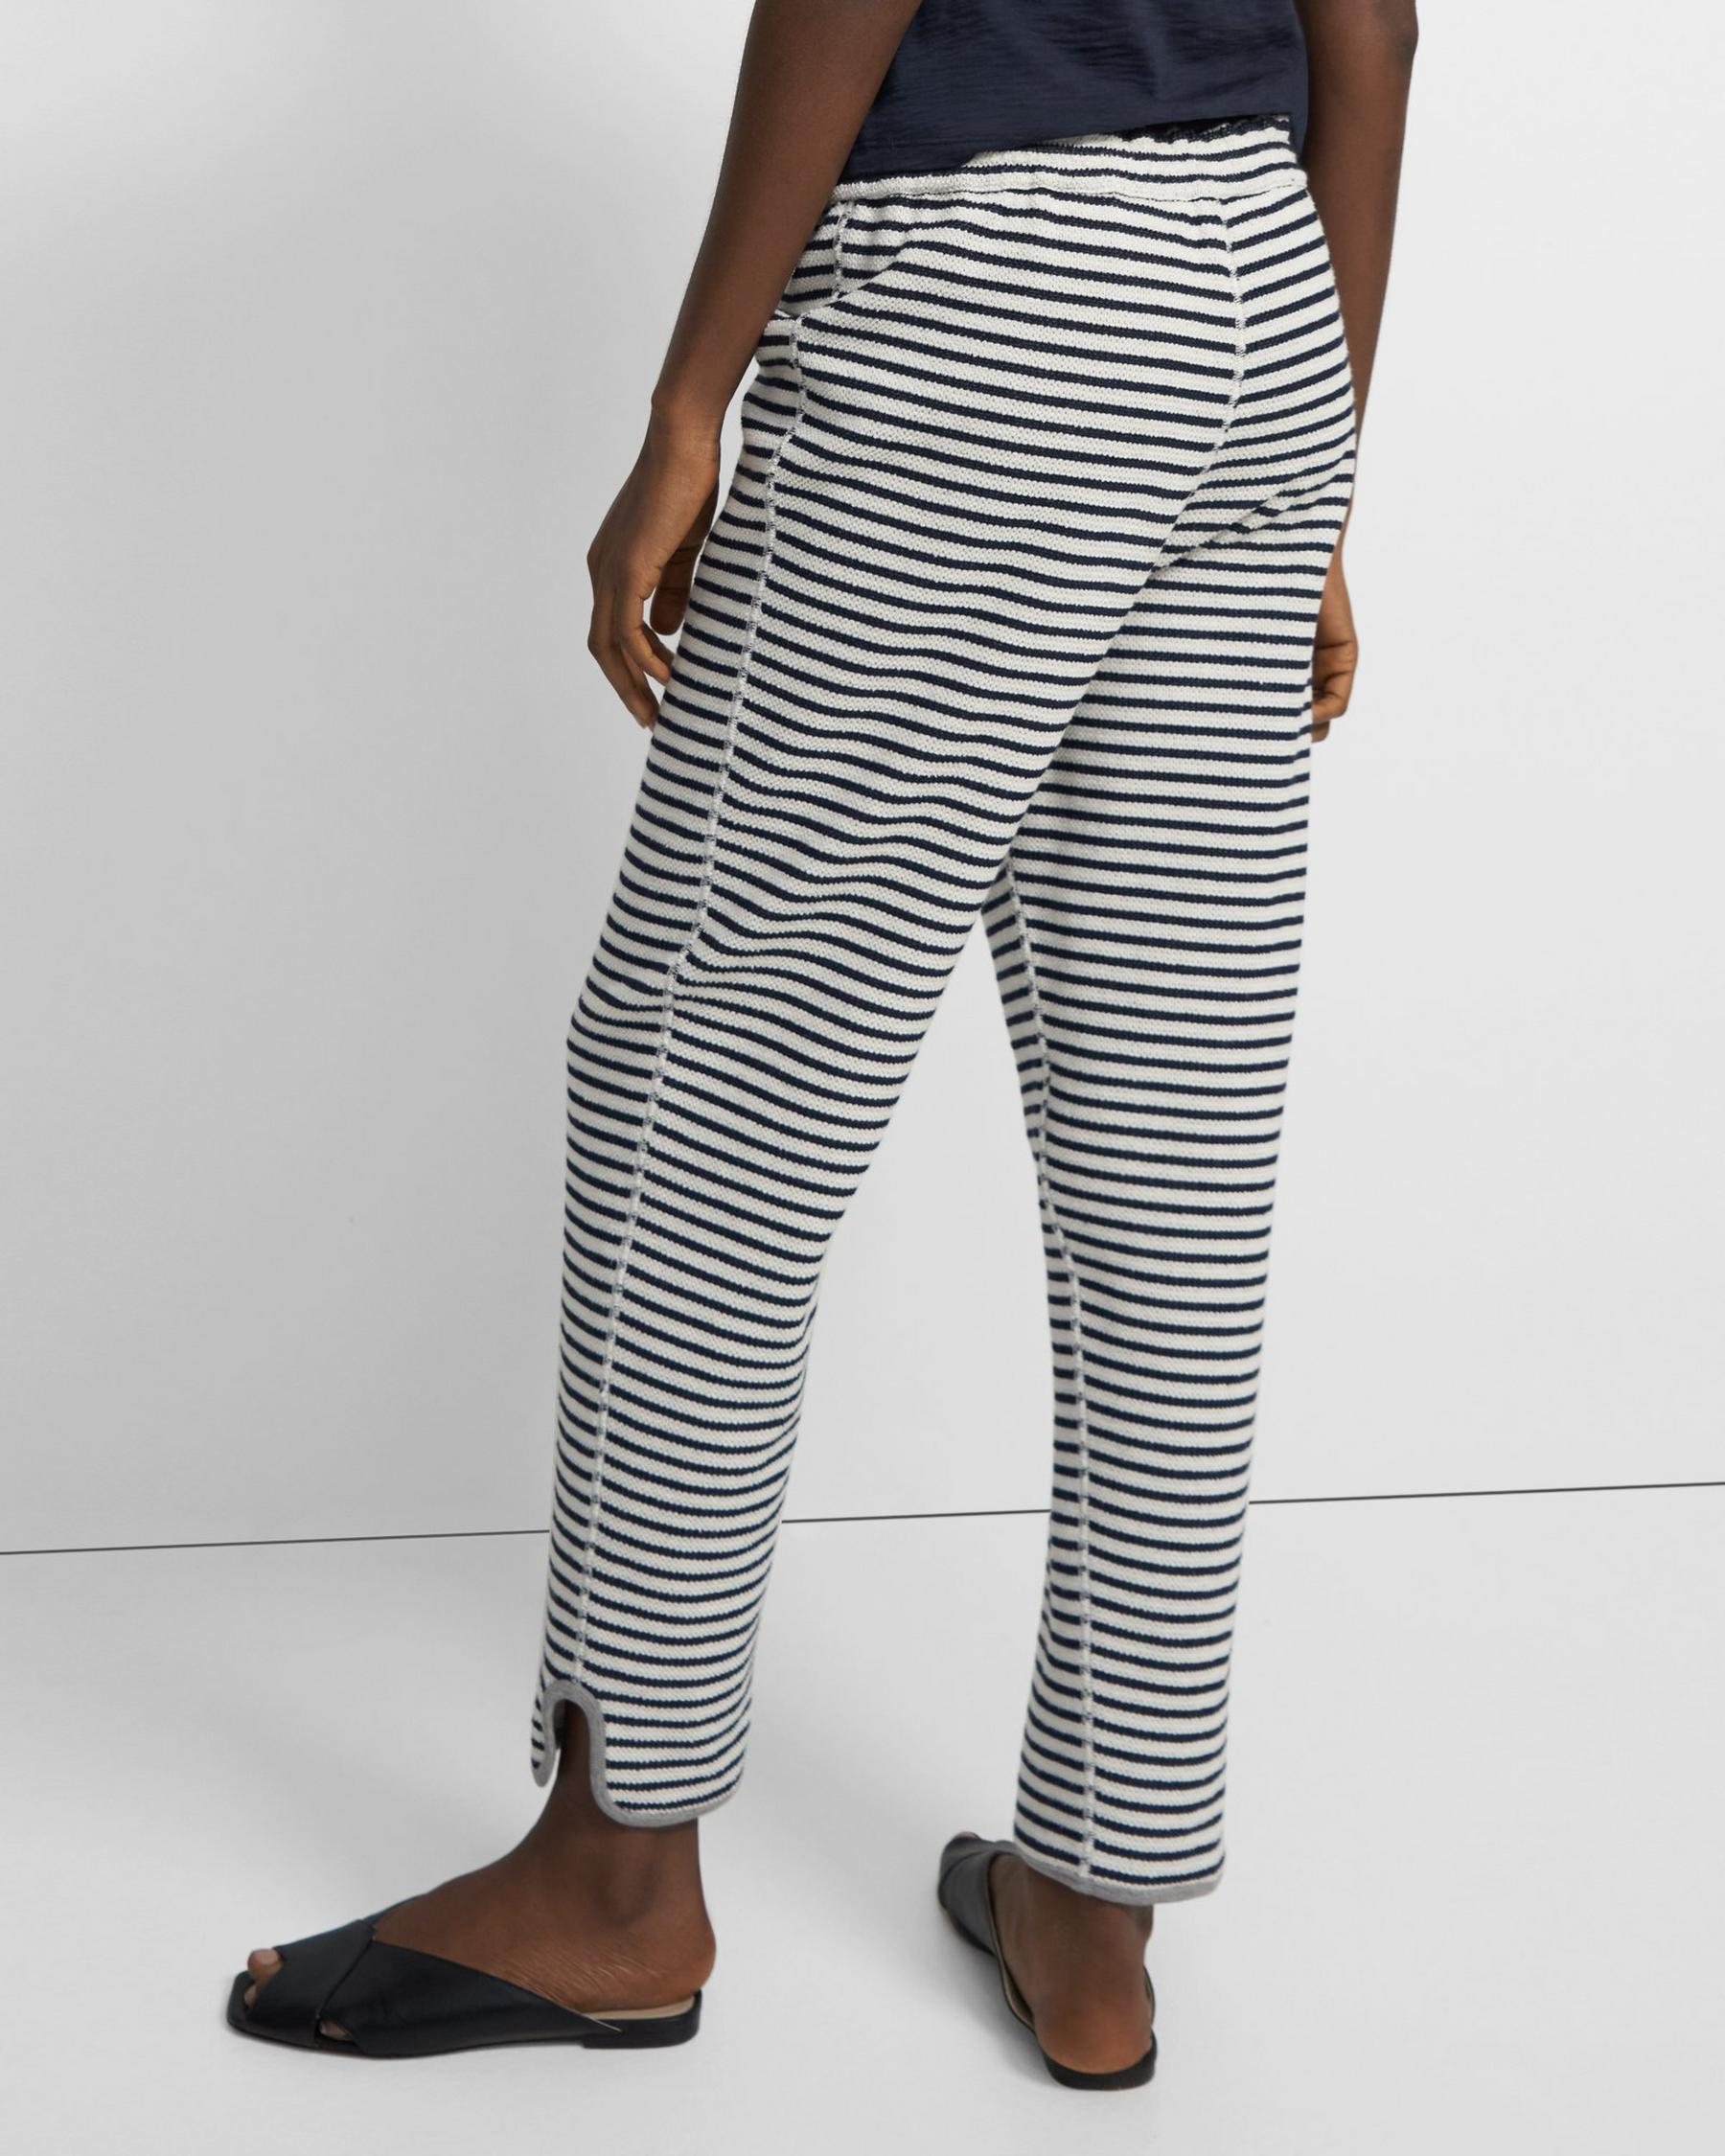 Reversible Notch Jogger in Terry Cotton 1